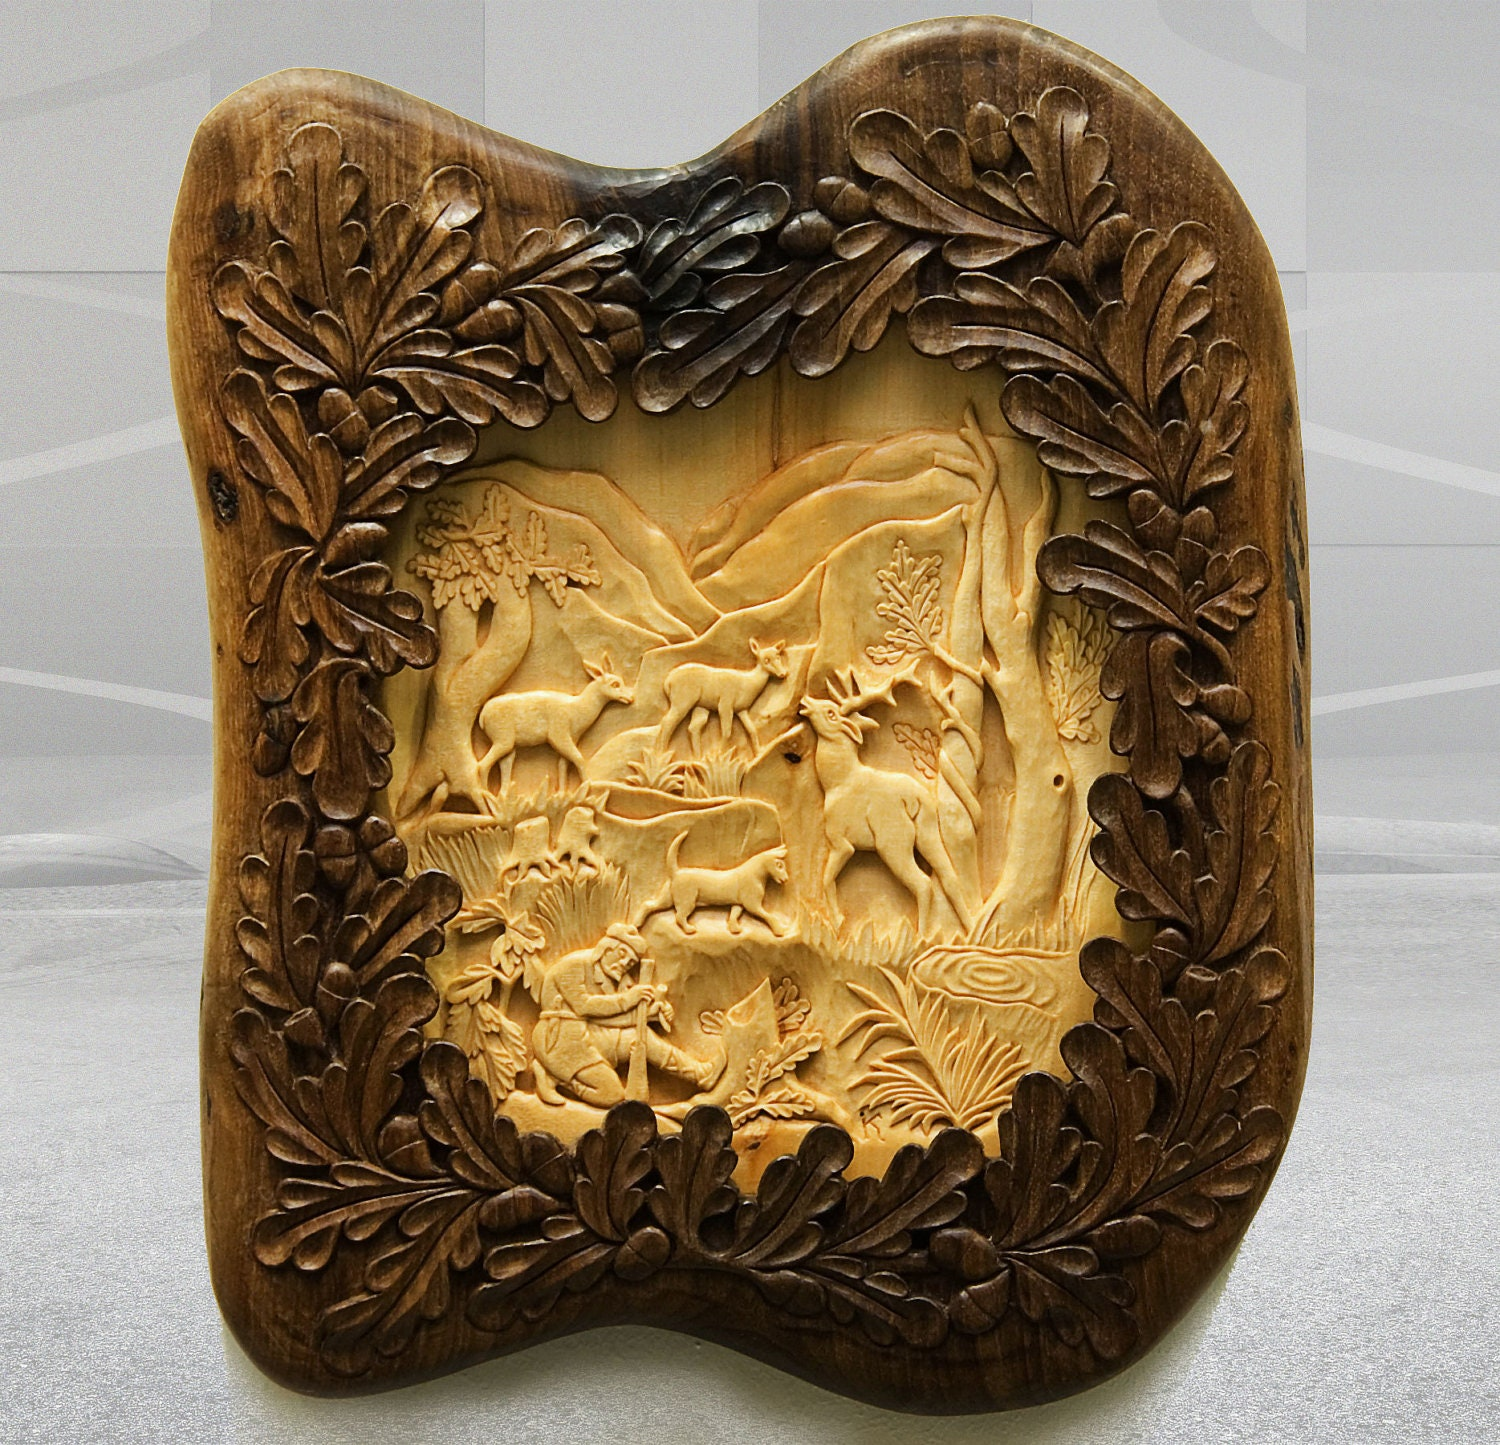 Wall art wood carving hunting scene with deer and